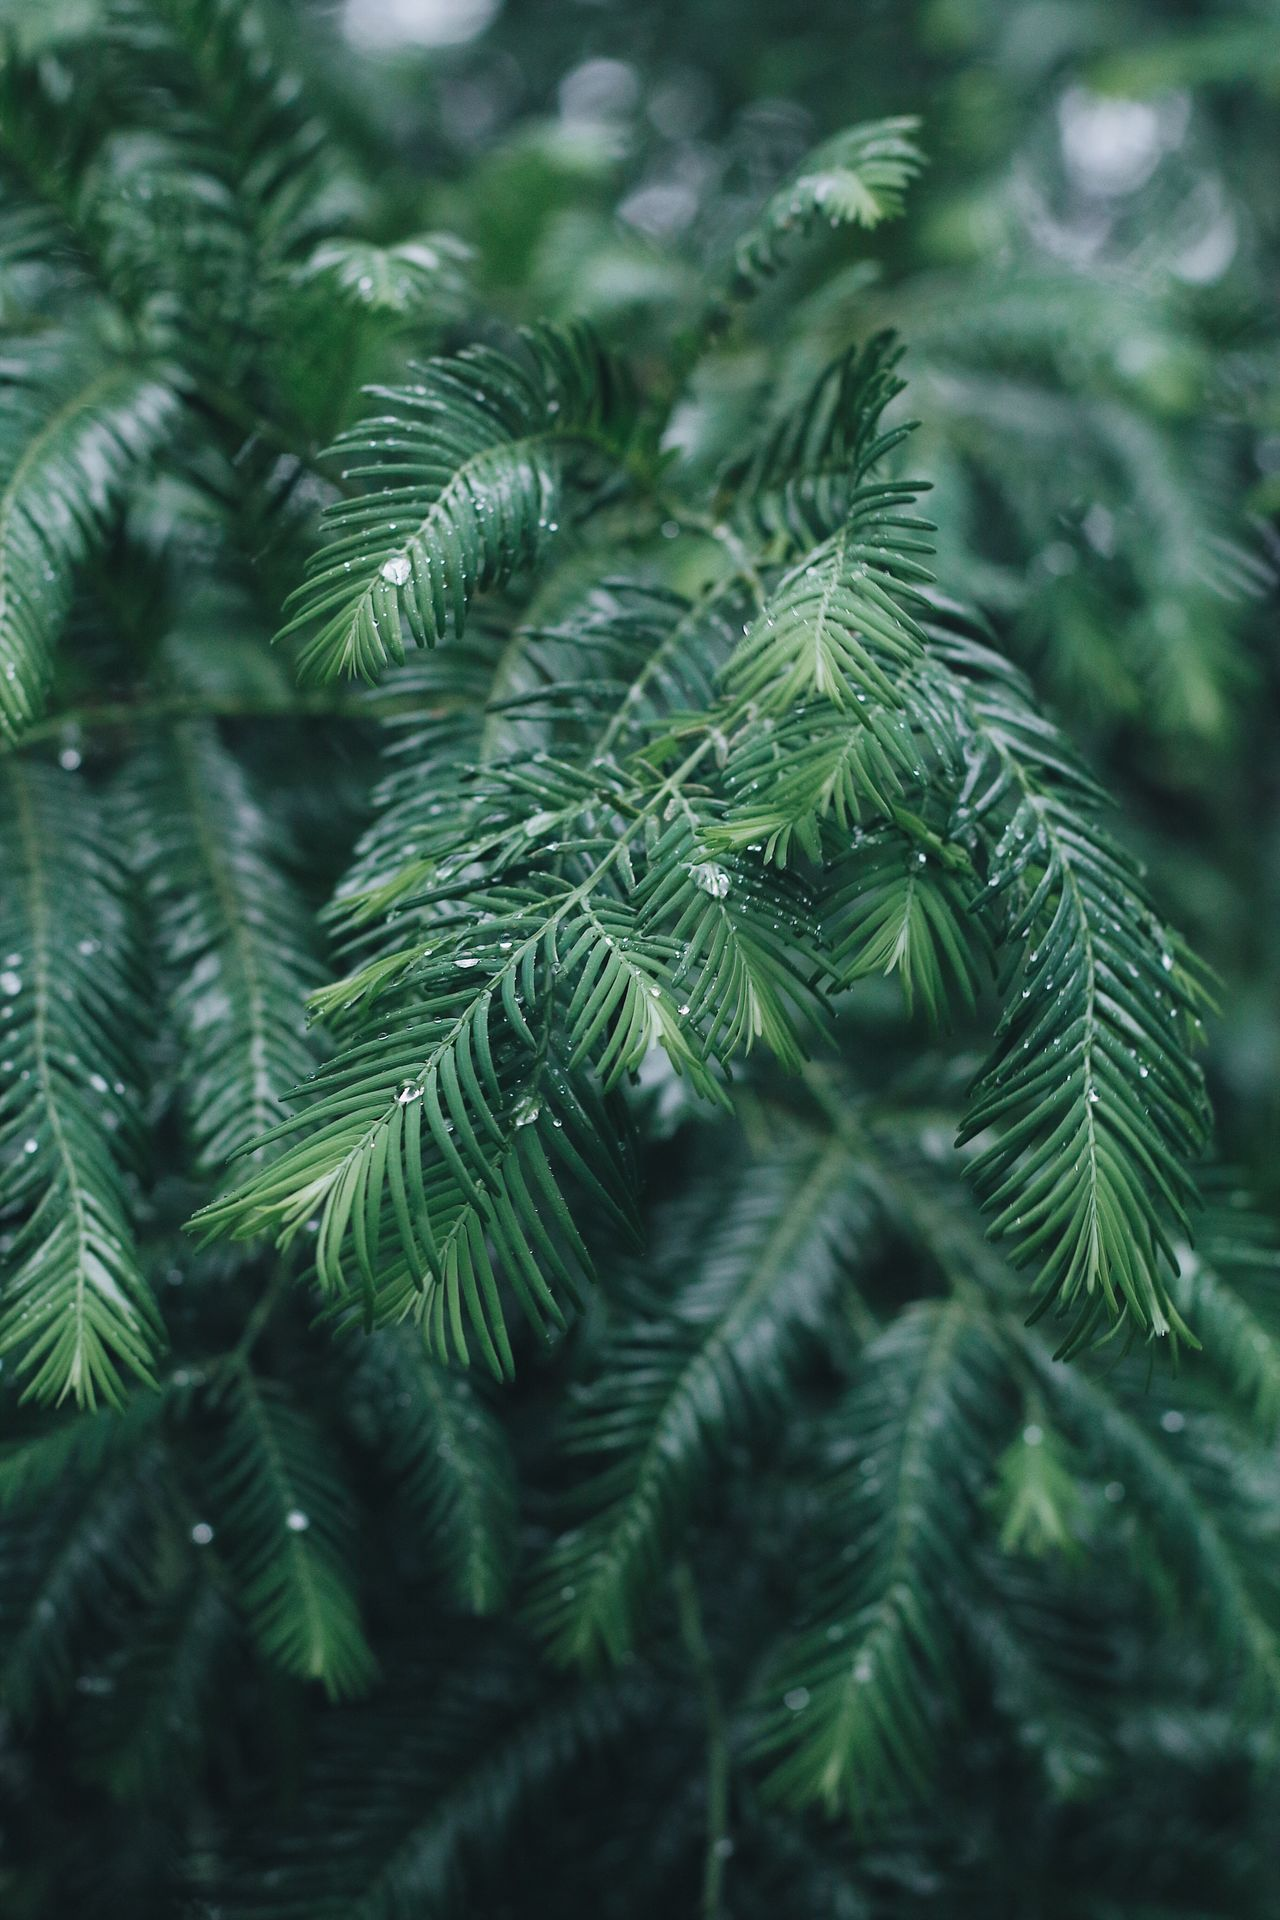 Rain Rainy Days Raindrops Nature Pine Tree Green Color No People Green Growth Close-up Pinaceae Beauty In Nature EyeEmNewHere From My Point Of View Leaves_collection Focus On Foreground Day Tree Branch Fern Needle Spruce Tree Fir Tree Outdoors Freshness